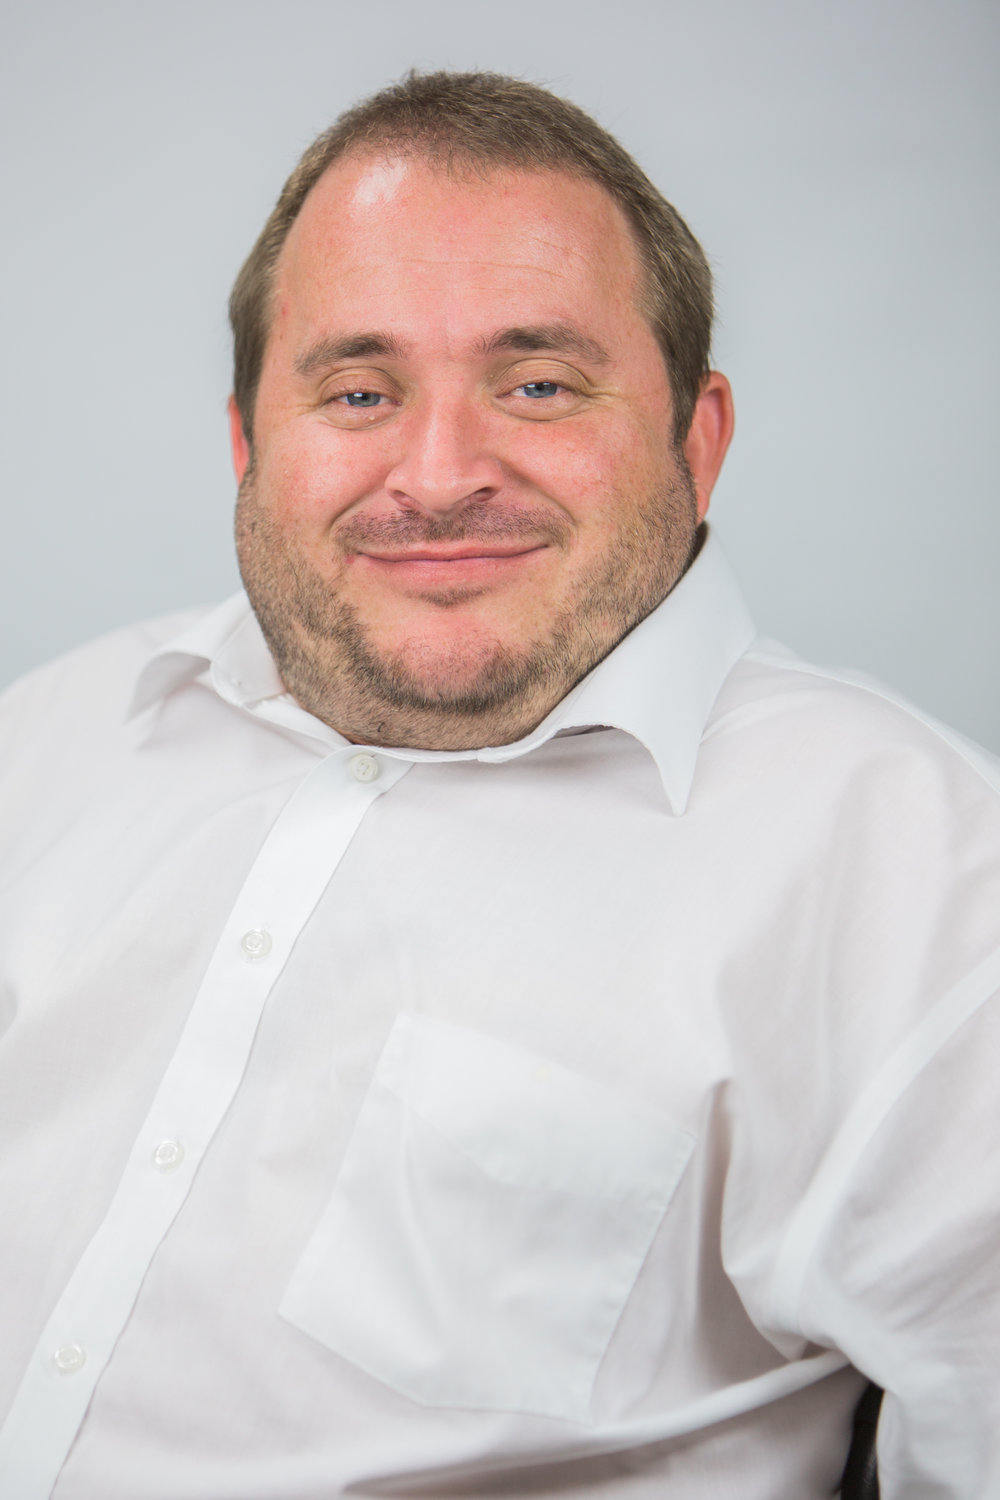 Peter O'Connell - Chief Executive Officer